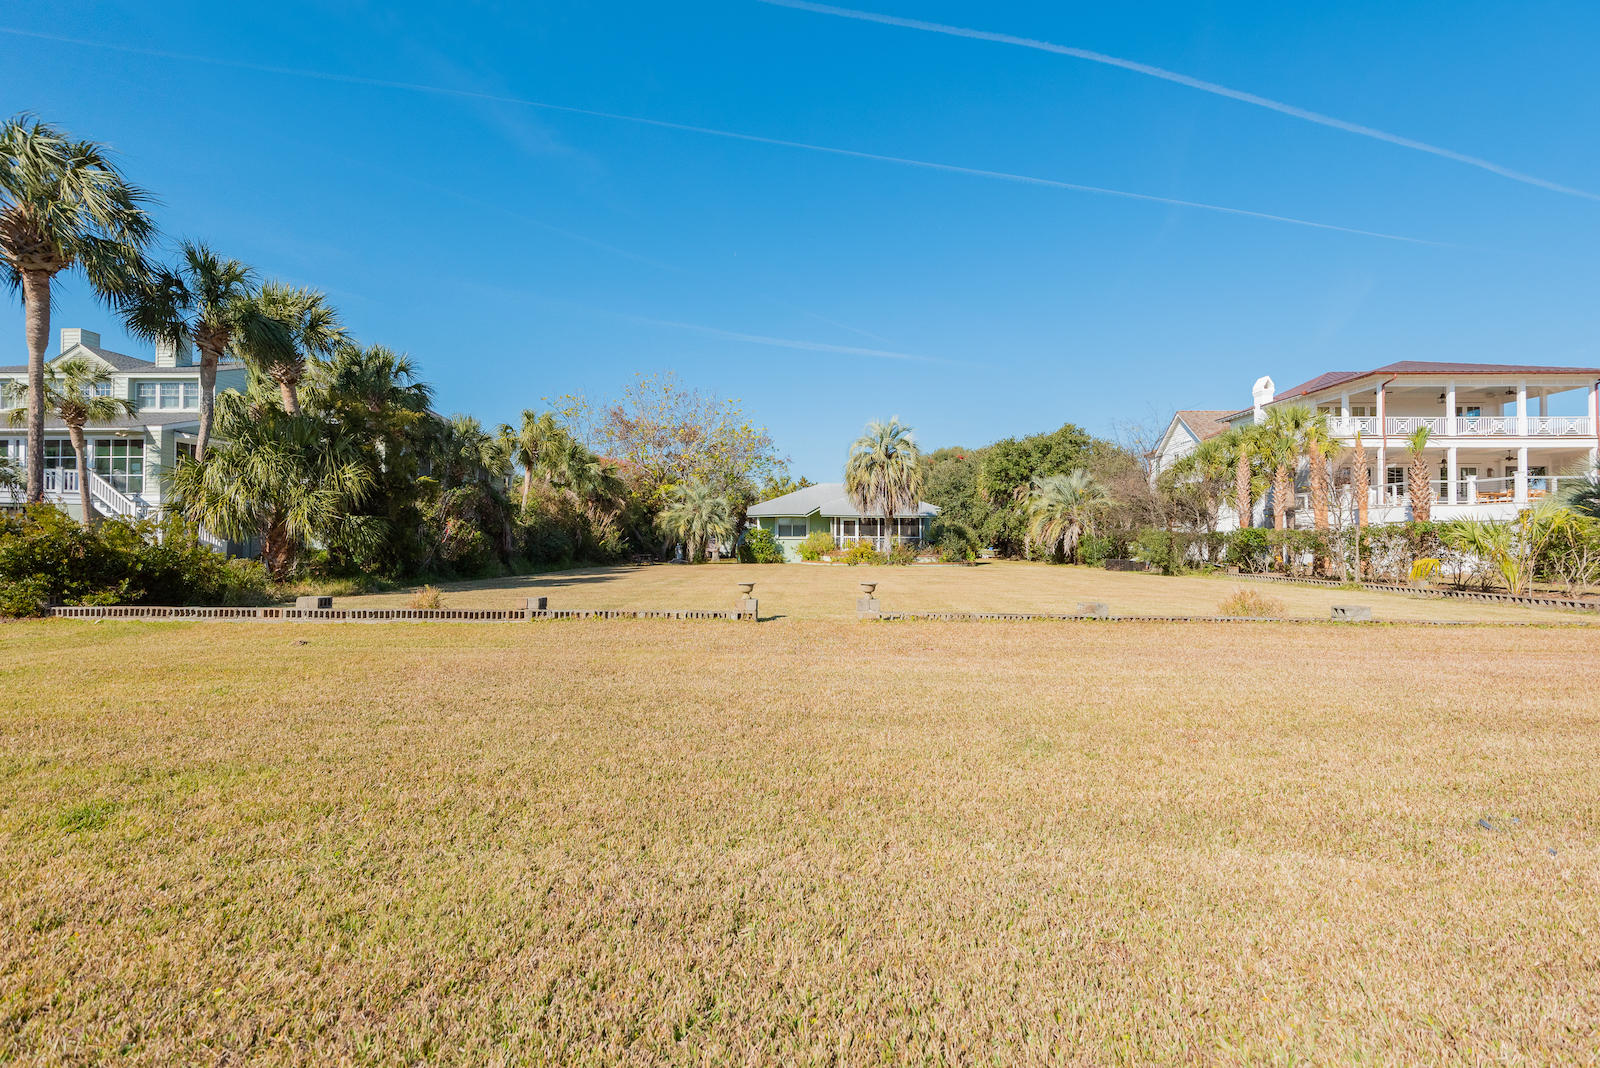 Sullivans Island Homes For Sale - 2525 Atlantic, Sullivans Island, SC - 7